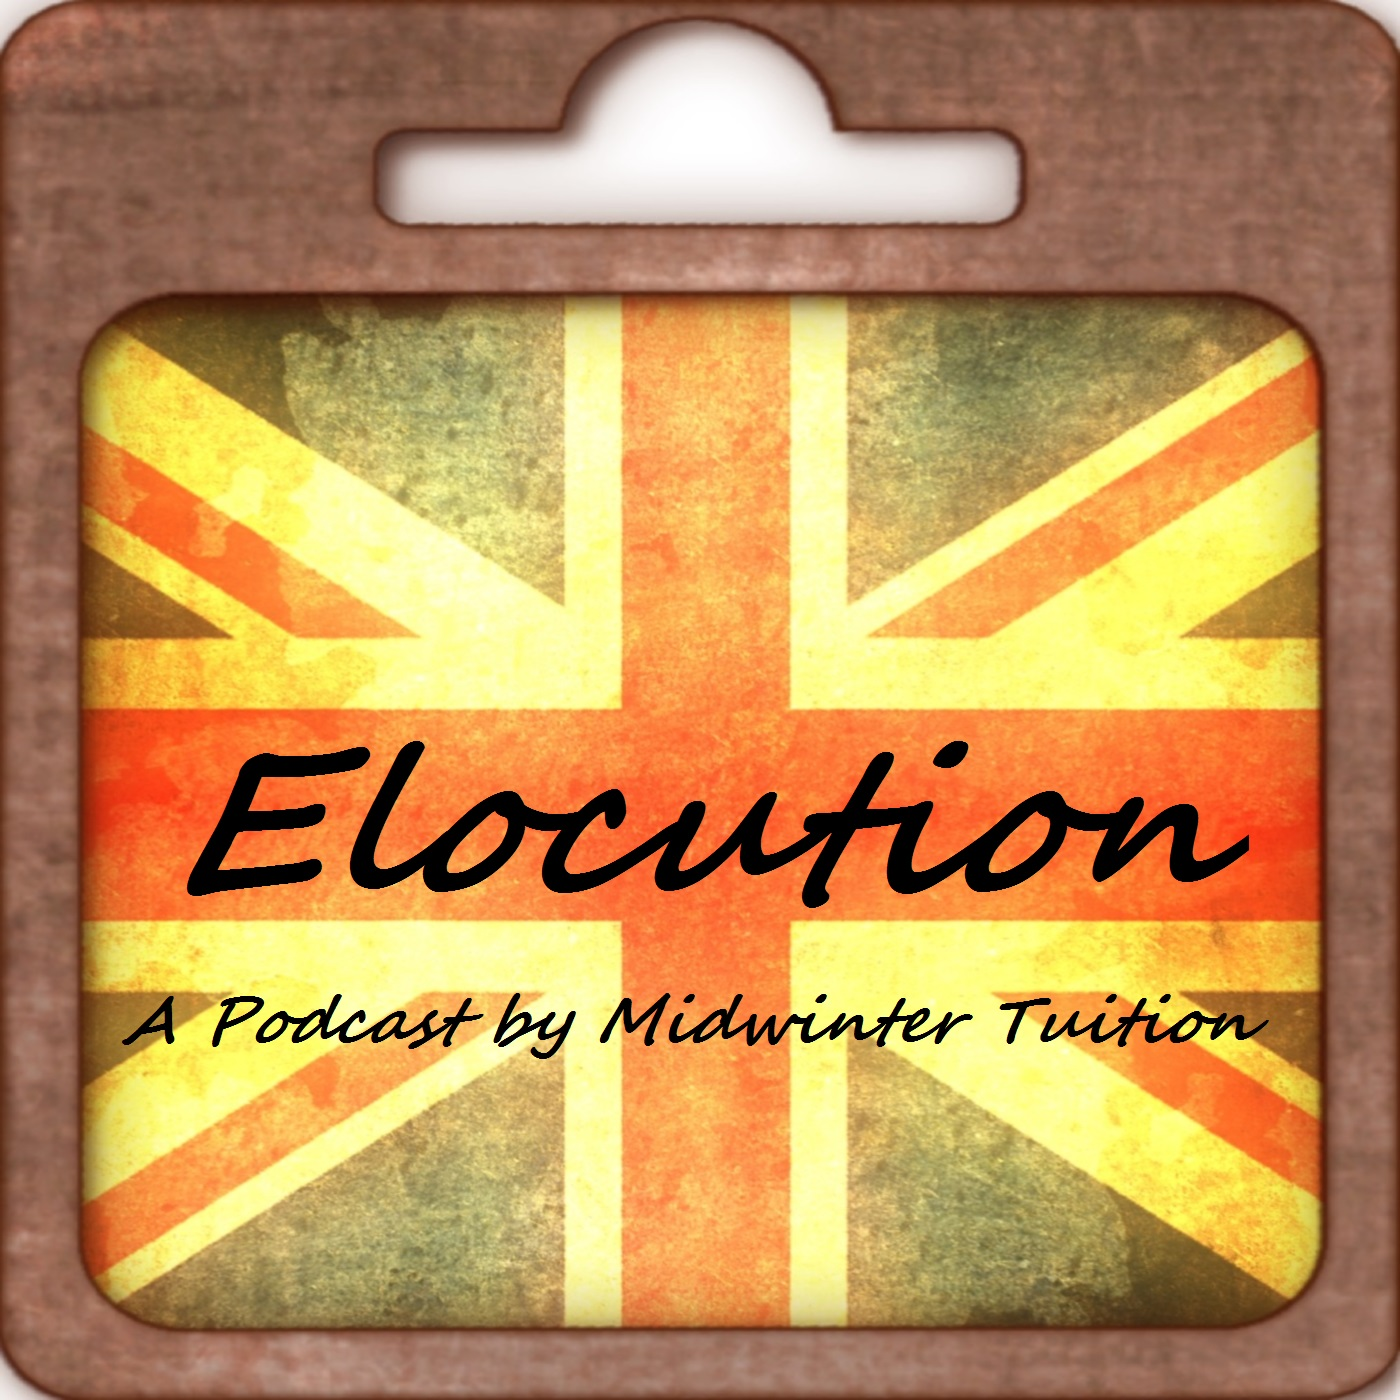 Elocution from Midwinter Tuition